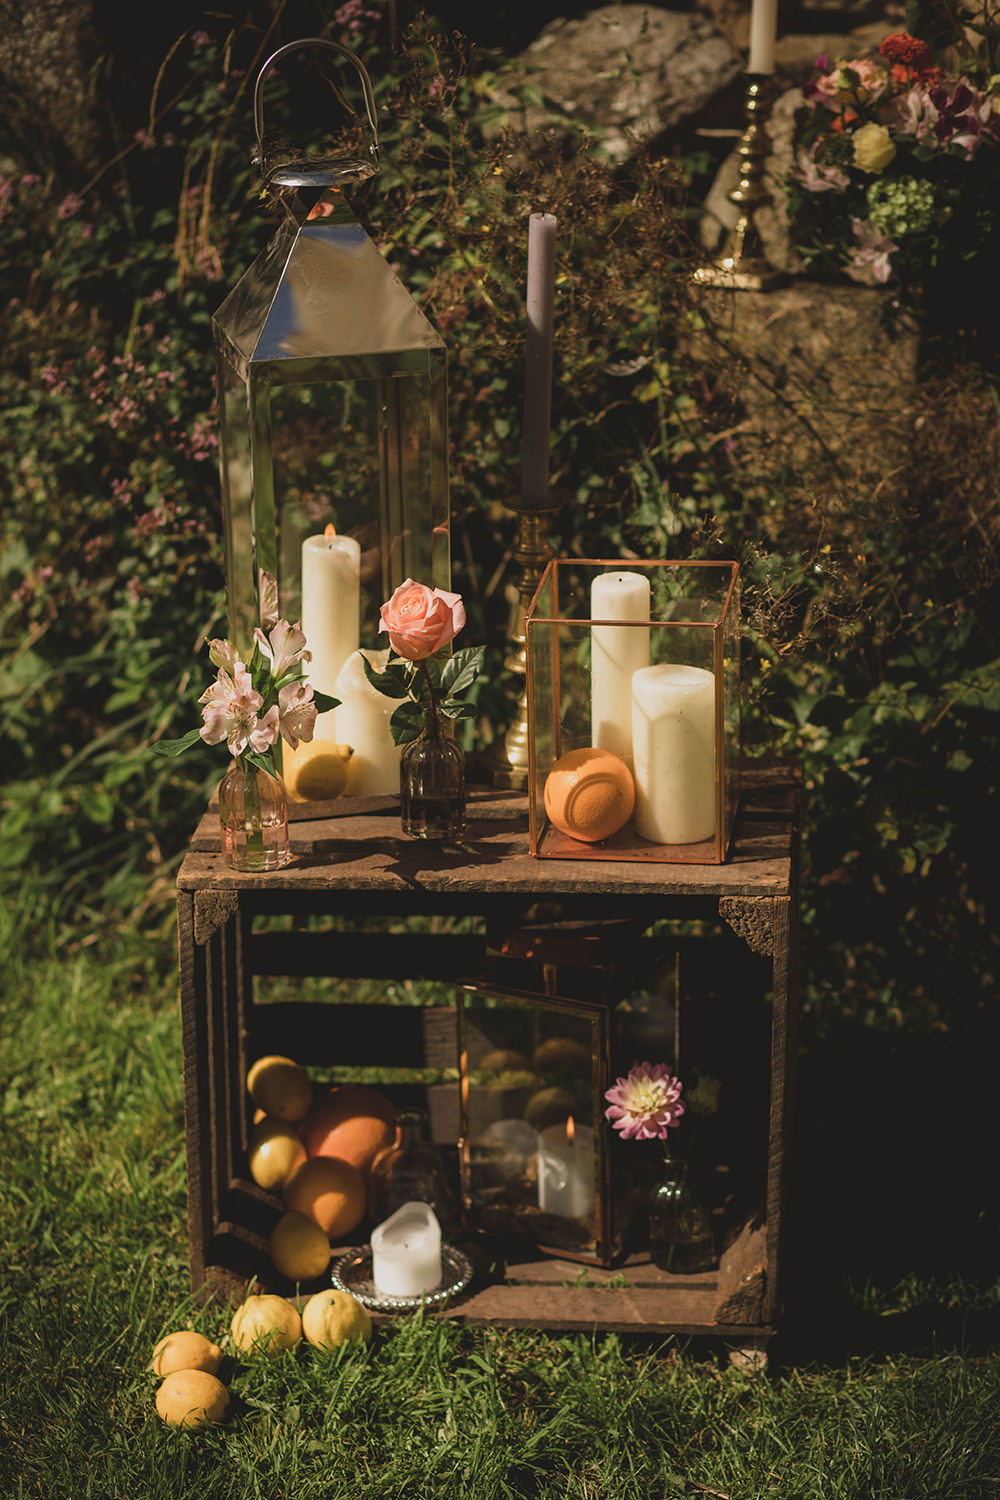 Jervaulx Abbey Wedding Ideas Laura Adams Photography Wooden Crate Decor Flowers Candles